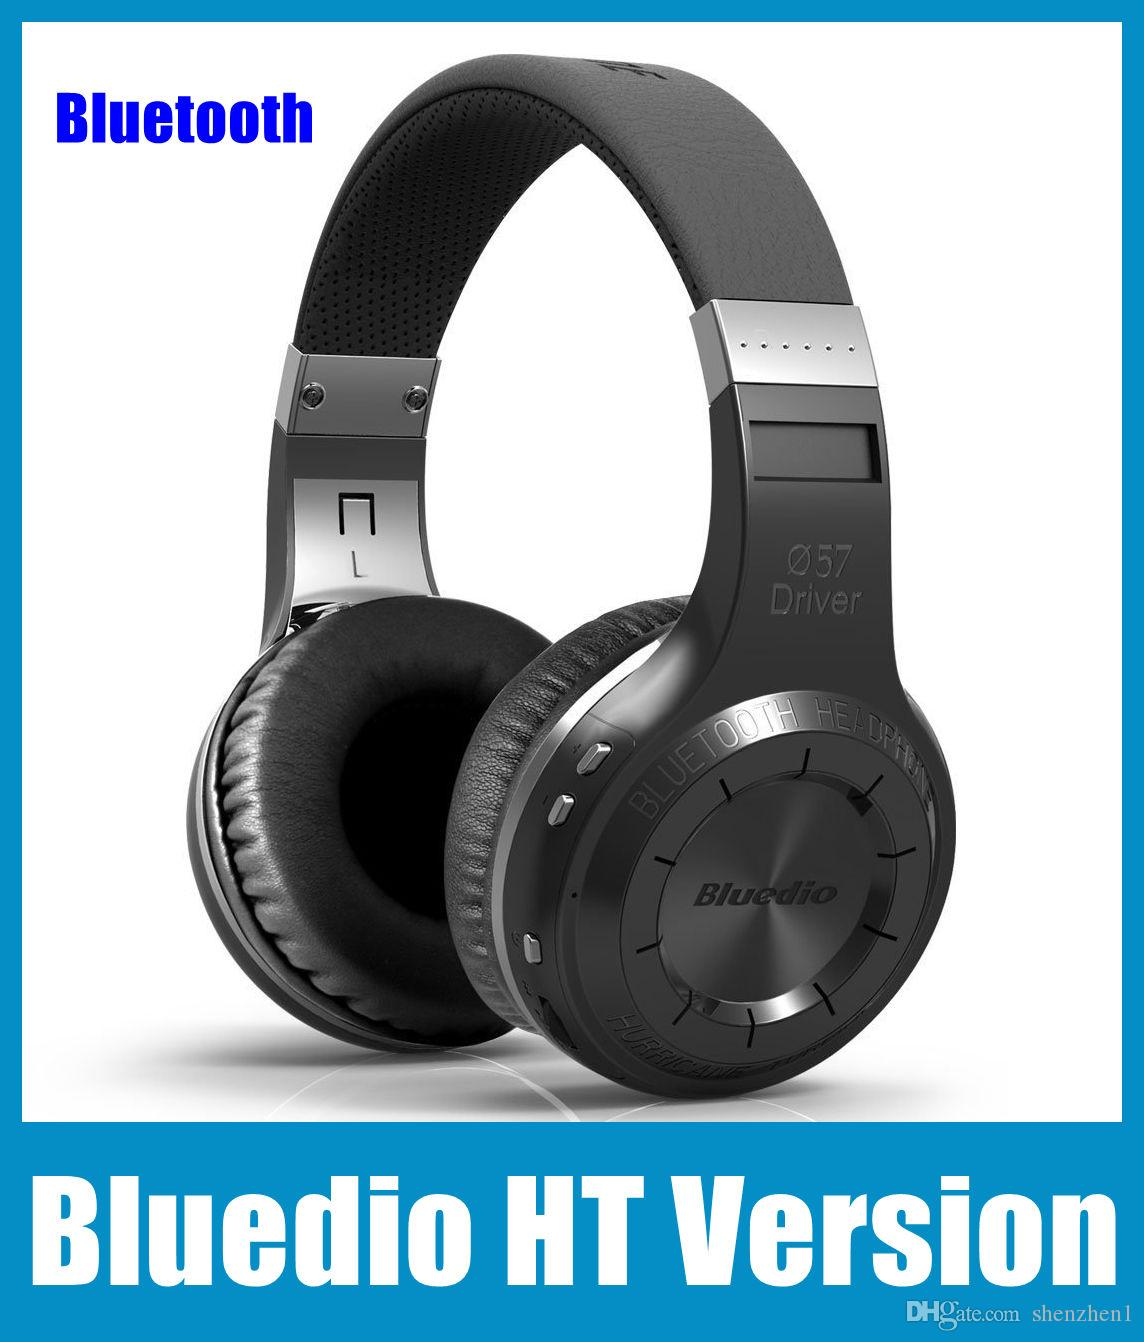 239a664ae44 New Arrival Headphones Bluedio HT Version 4.1 Bluetooth Wireless Headset  For Mobile Phone And Computers EAR113 Wireless Noise Cancelling Headphones  ...